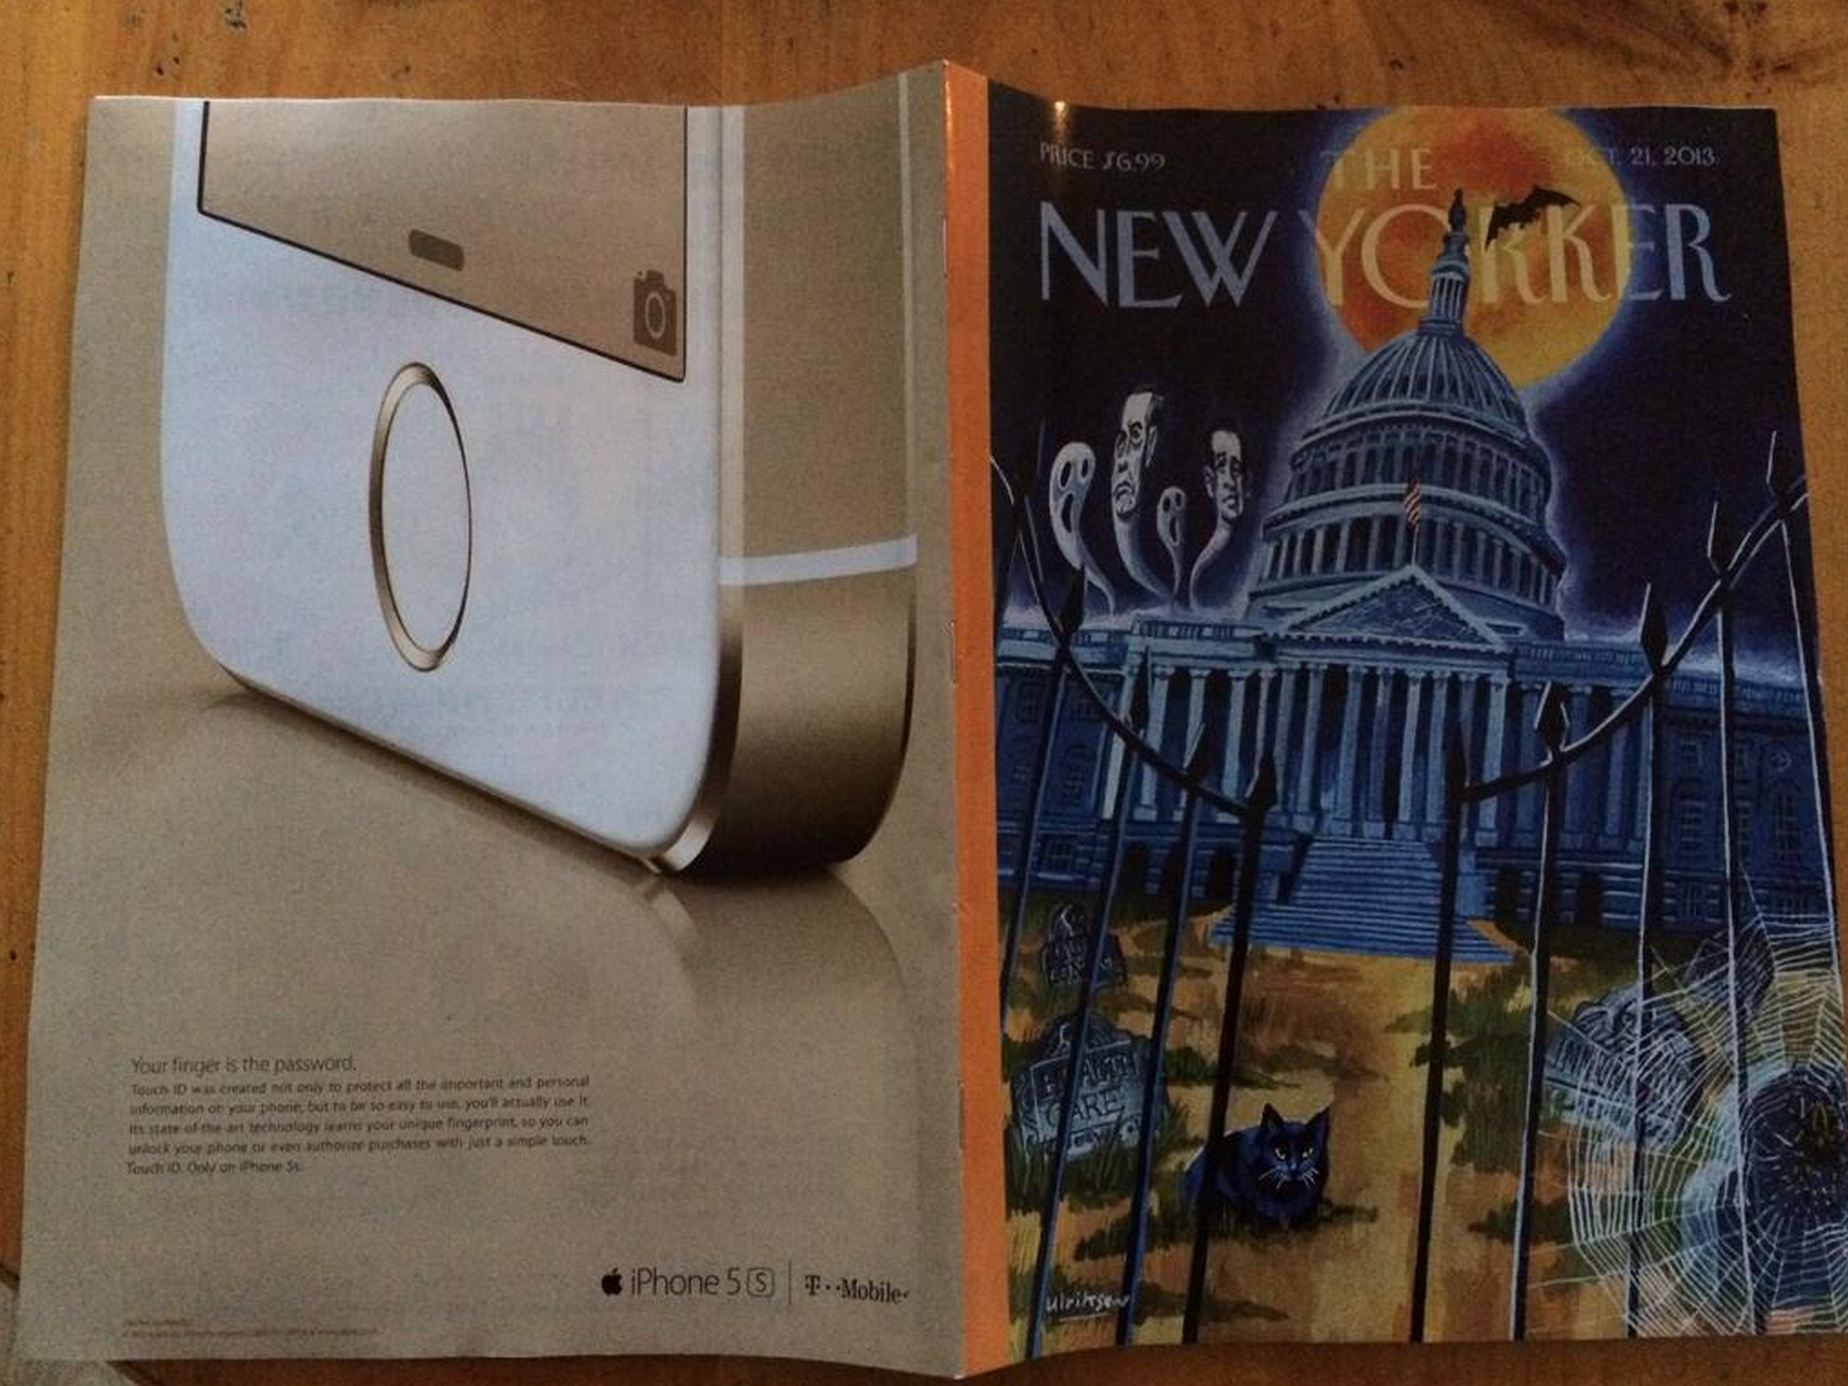 New-Yorker-Gold-iPhone-5s-ad-01